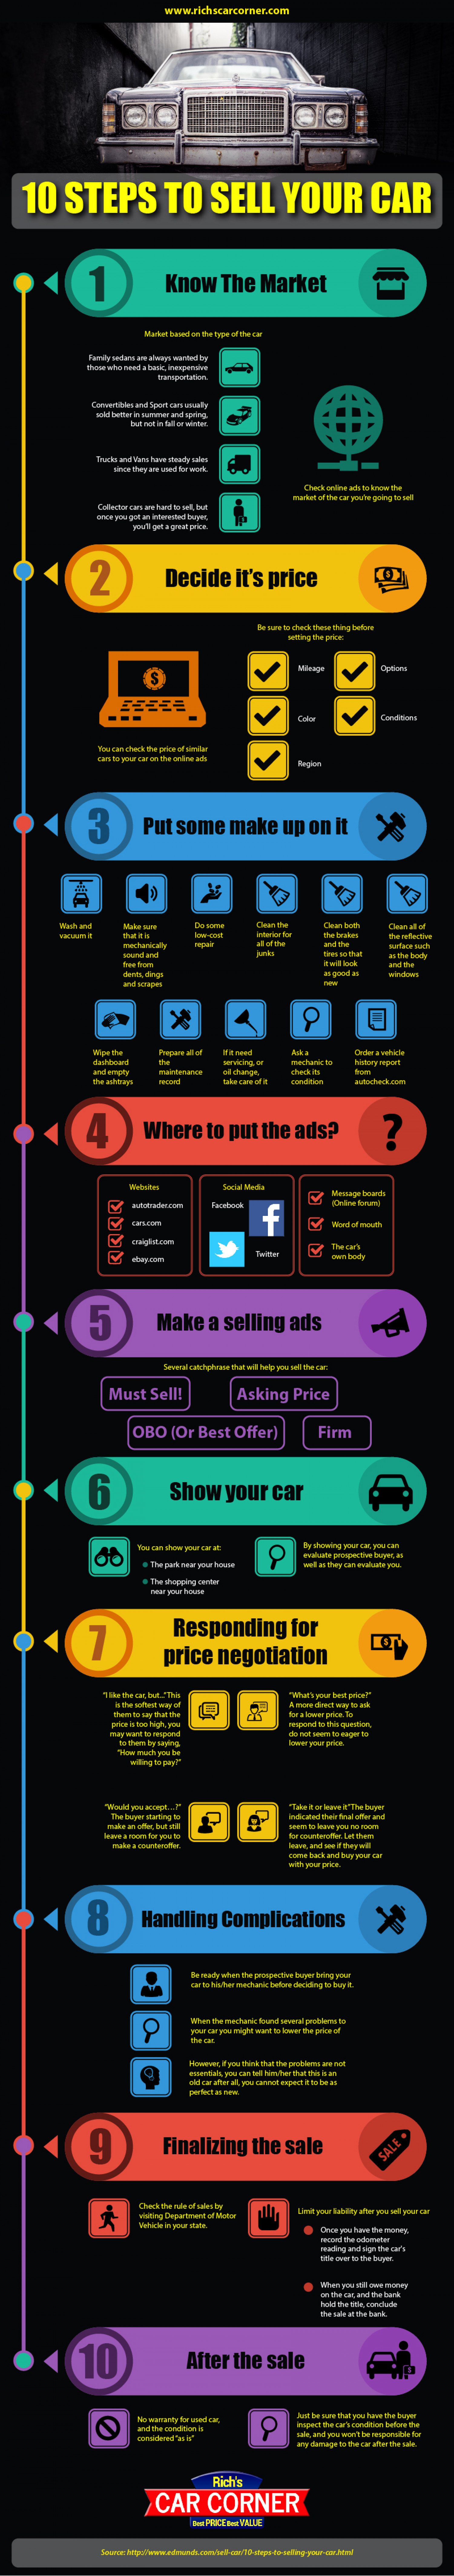 10 Steps to Sell your Used Car Infographic